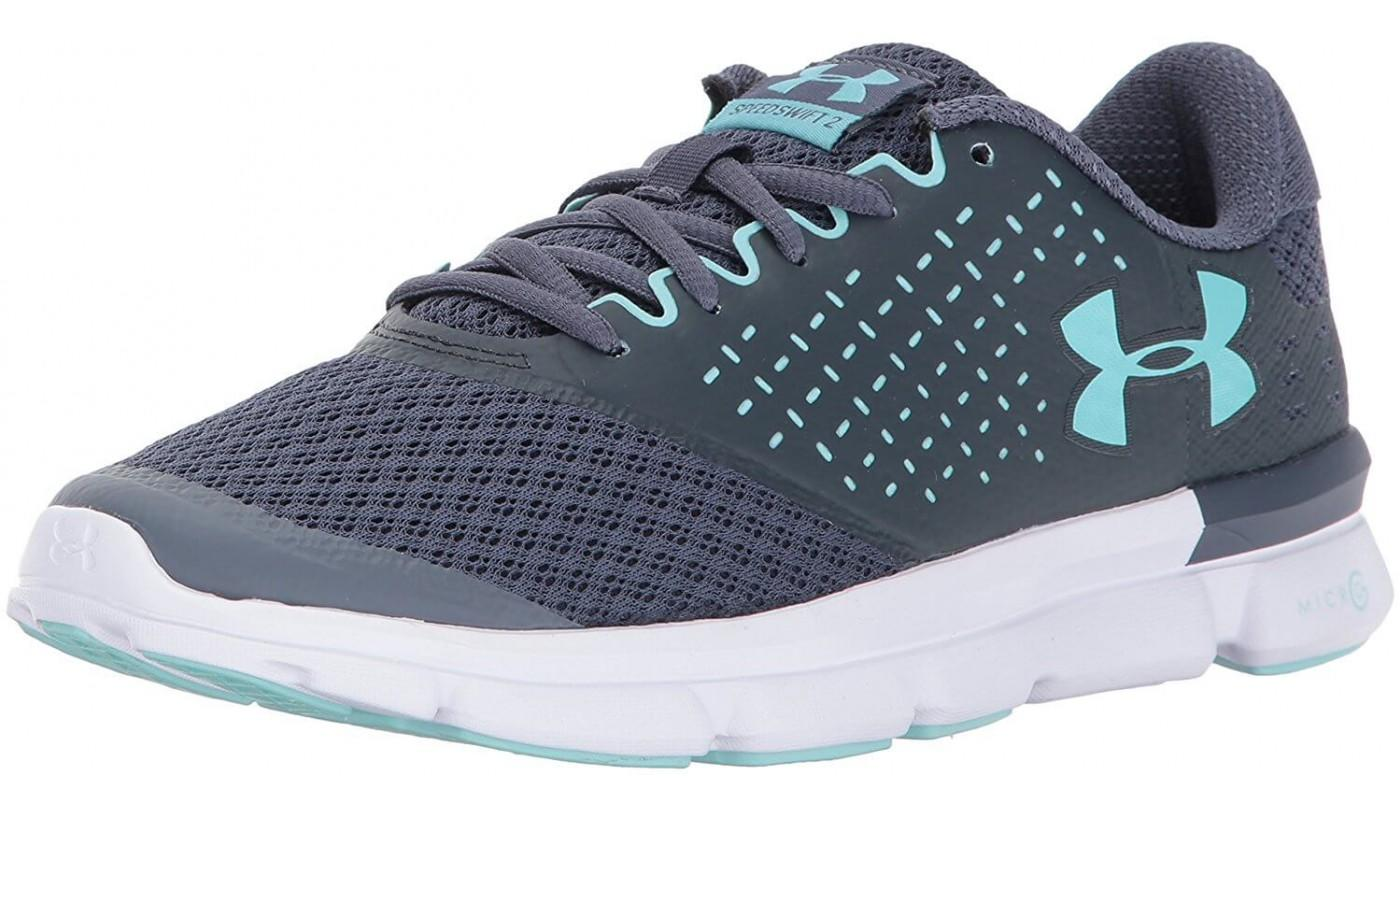 The Under Armour Speed Swift 2 features a breathable mesh upper